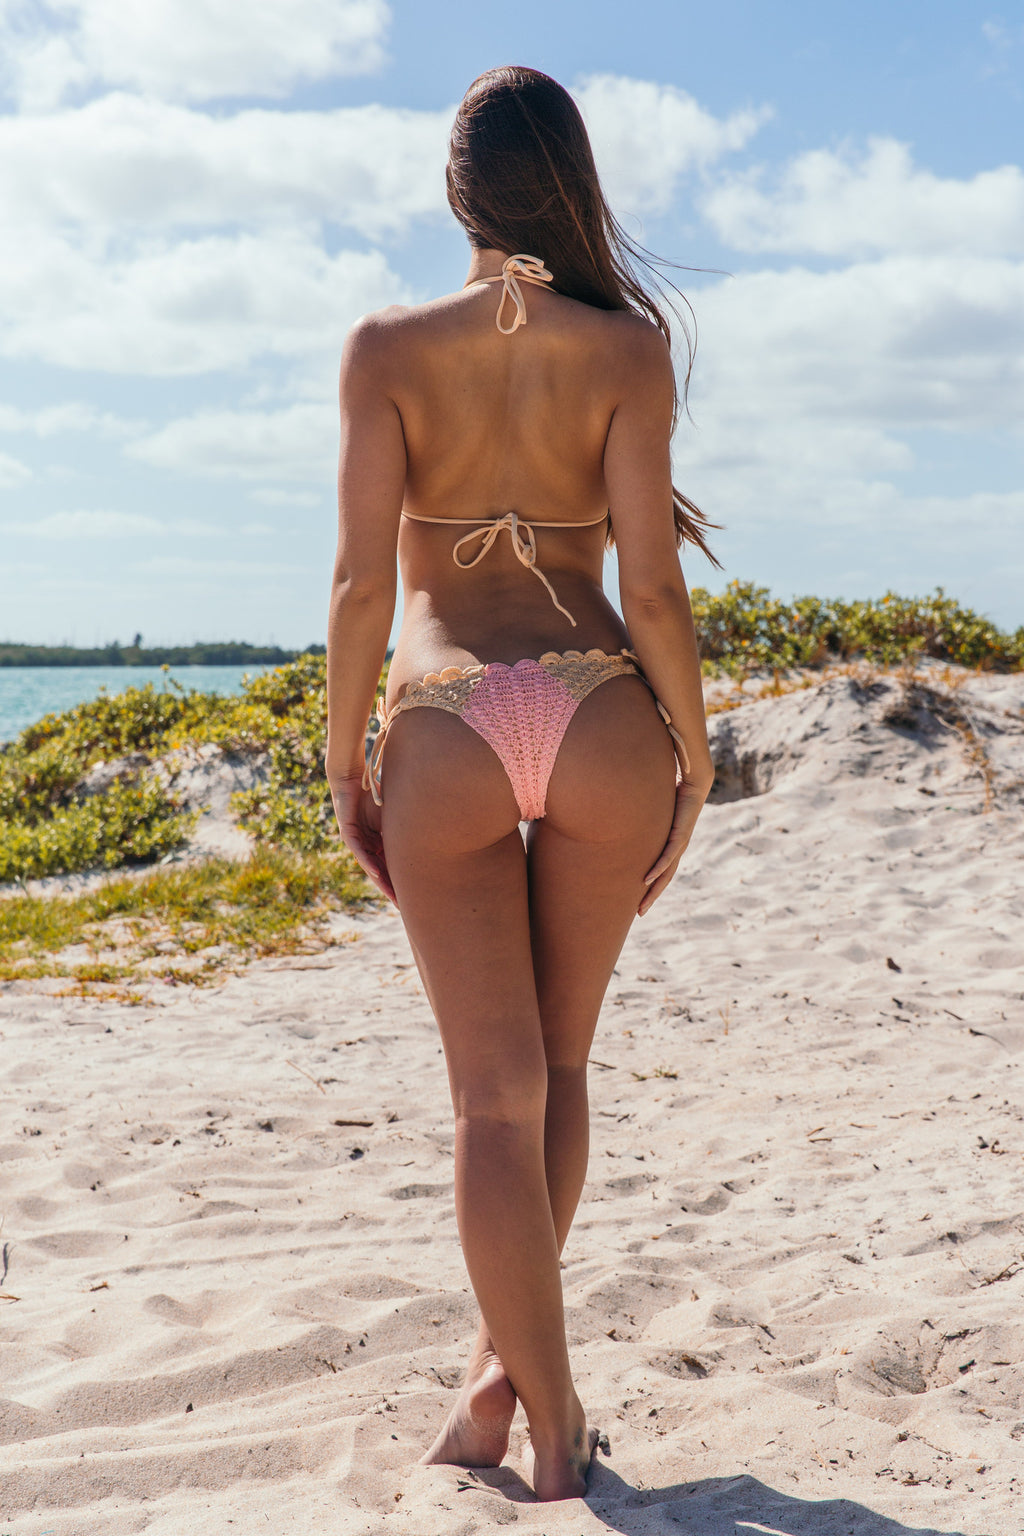 My Bell Bottom in Pink Pearl - Boho Bum Island Clothing Swimwear Bohemian Boho west palm beach  Miami florida  fall fashion spring fashion online shopping ootd blogger style swim boutique